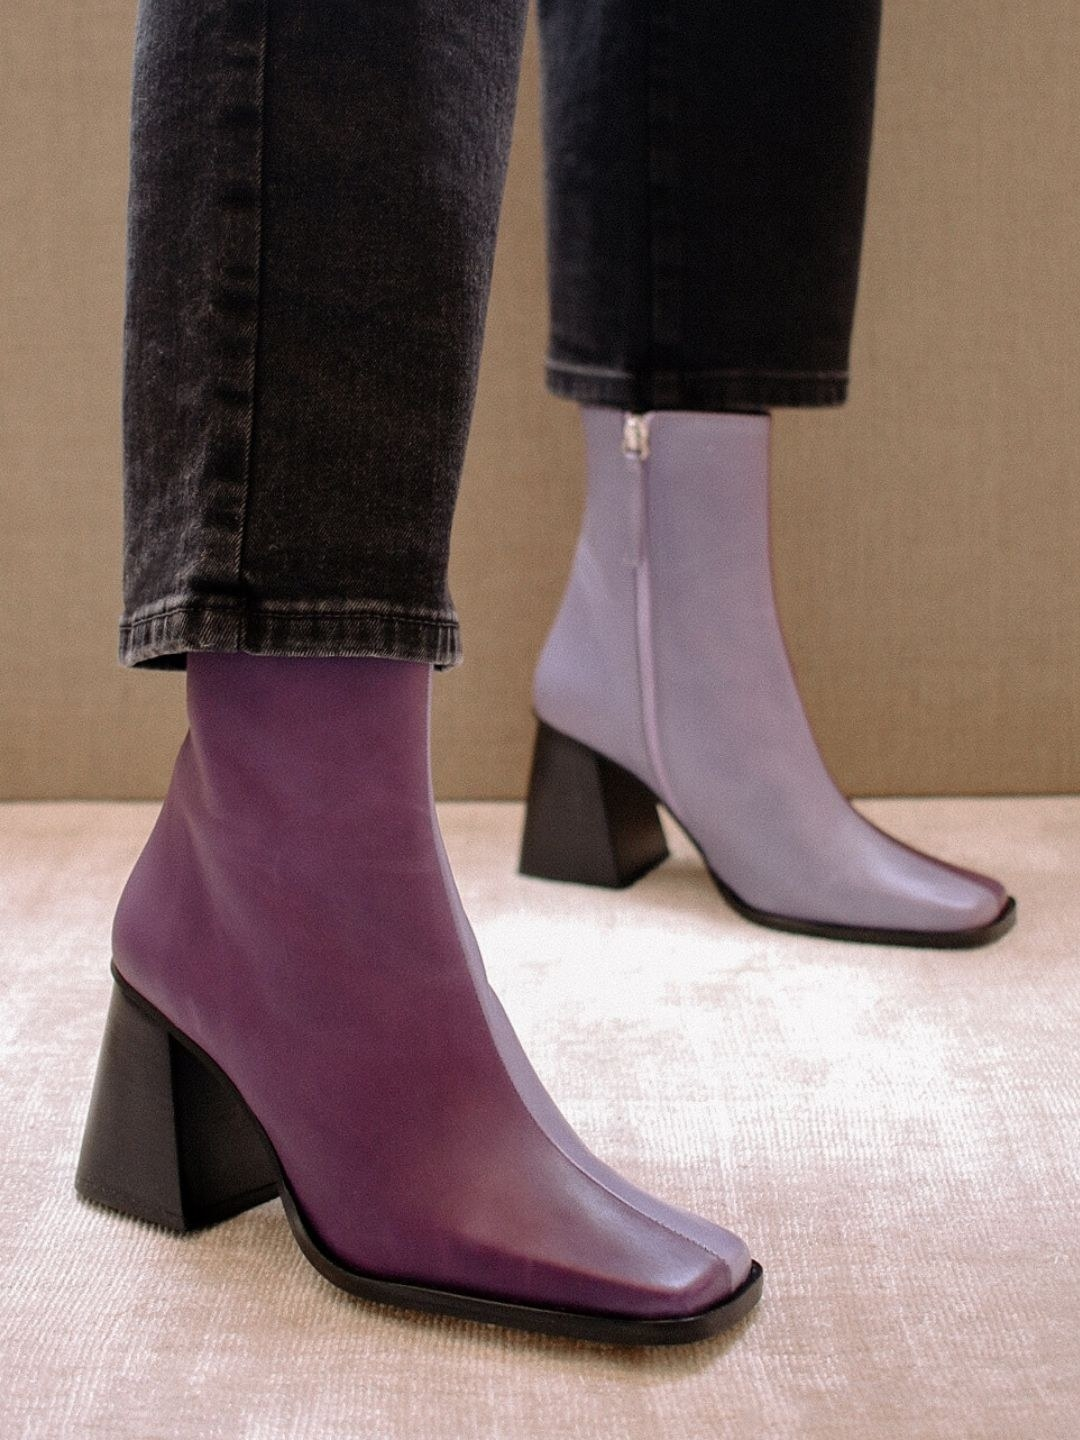 Model wearing the boots with one half lilac purple and the other a darker purples, with a dark brown chunky heel that gets wider as it gets closer to the ground.